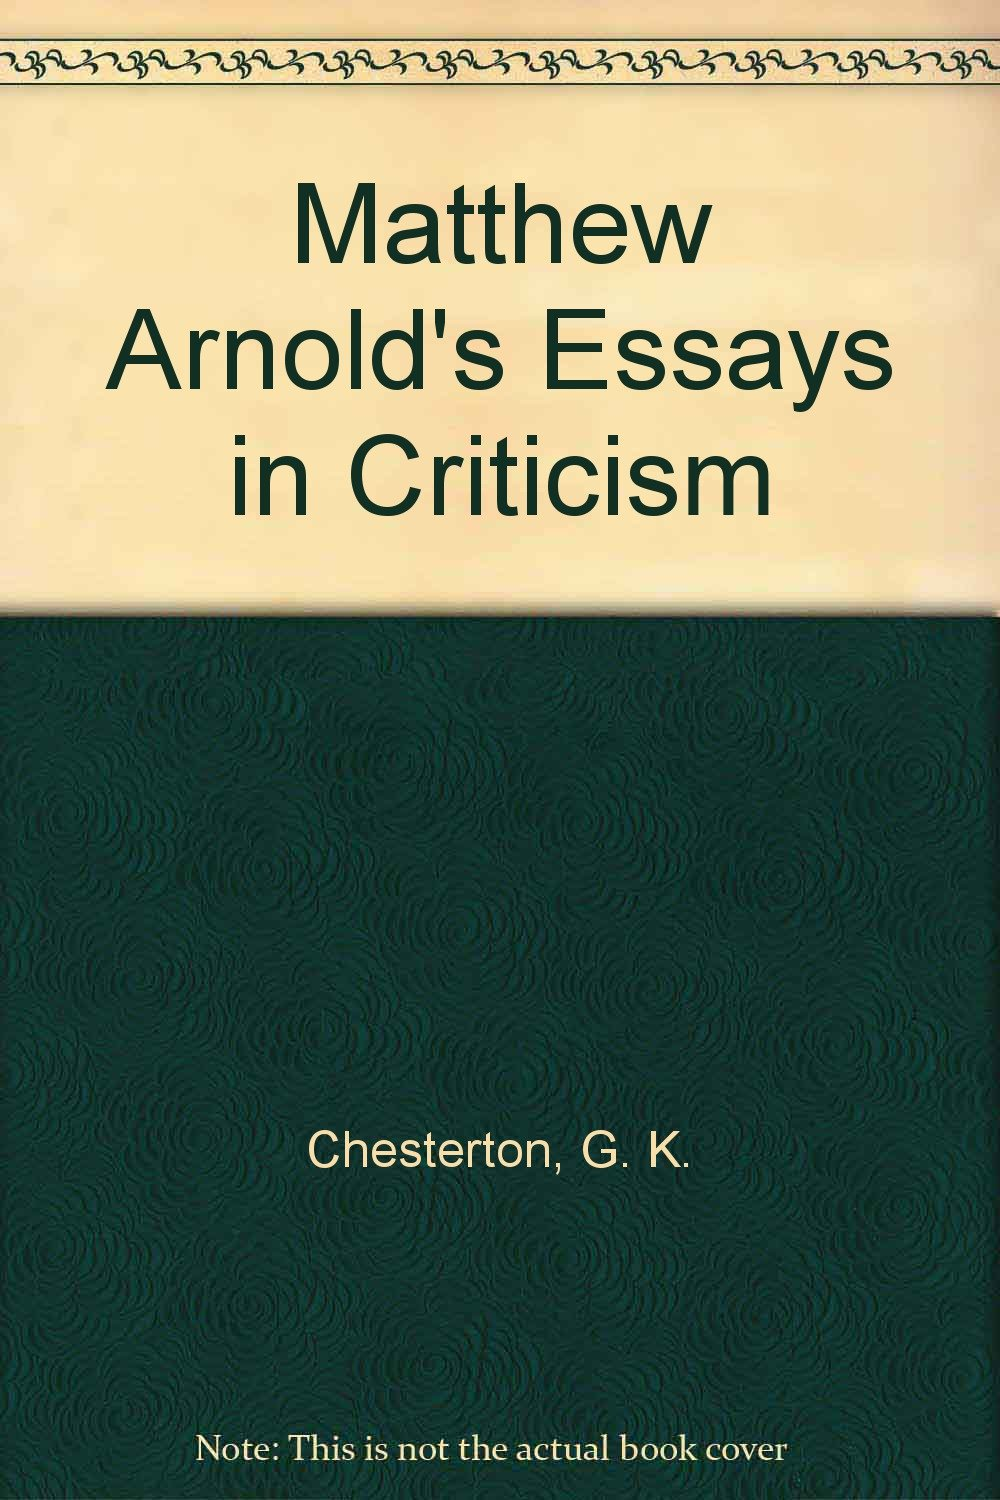 College Vs High School Essay Matthew Arnolds Essays In Criticism G K Chesterton Amazoncom Books Essay Writing Scholarships For High School Students also Essays On The Yellow Wallpaper Matthew Arnolds Essays In Criticism G K Chesterton Amazoncom  English Sample Essays